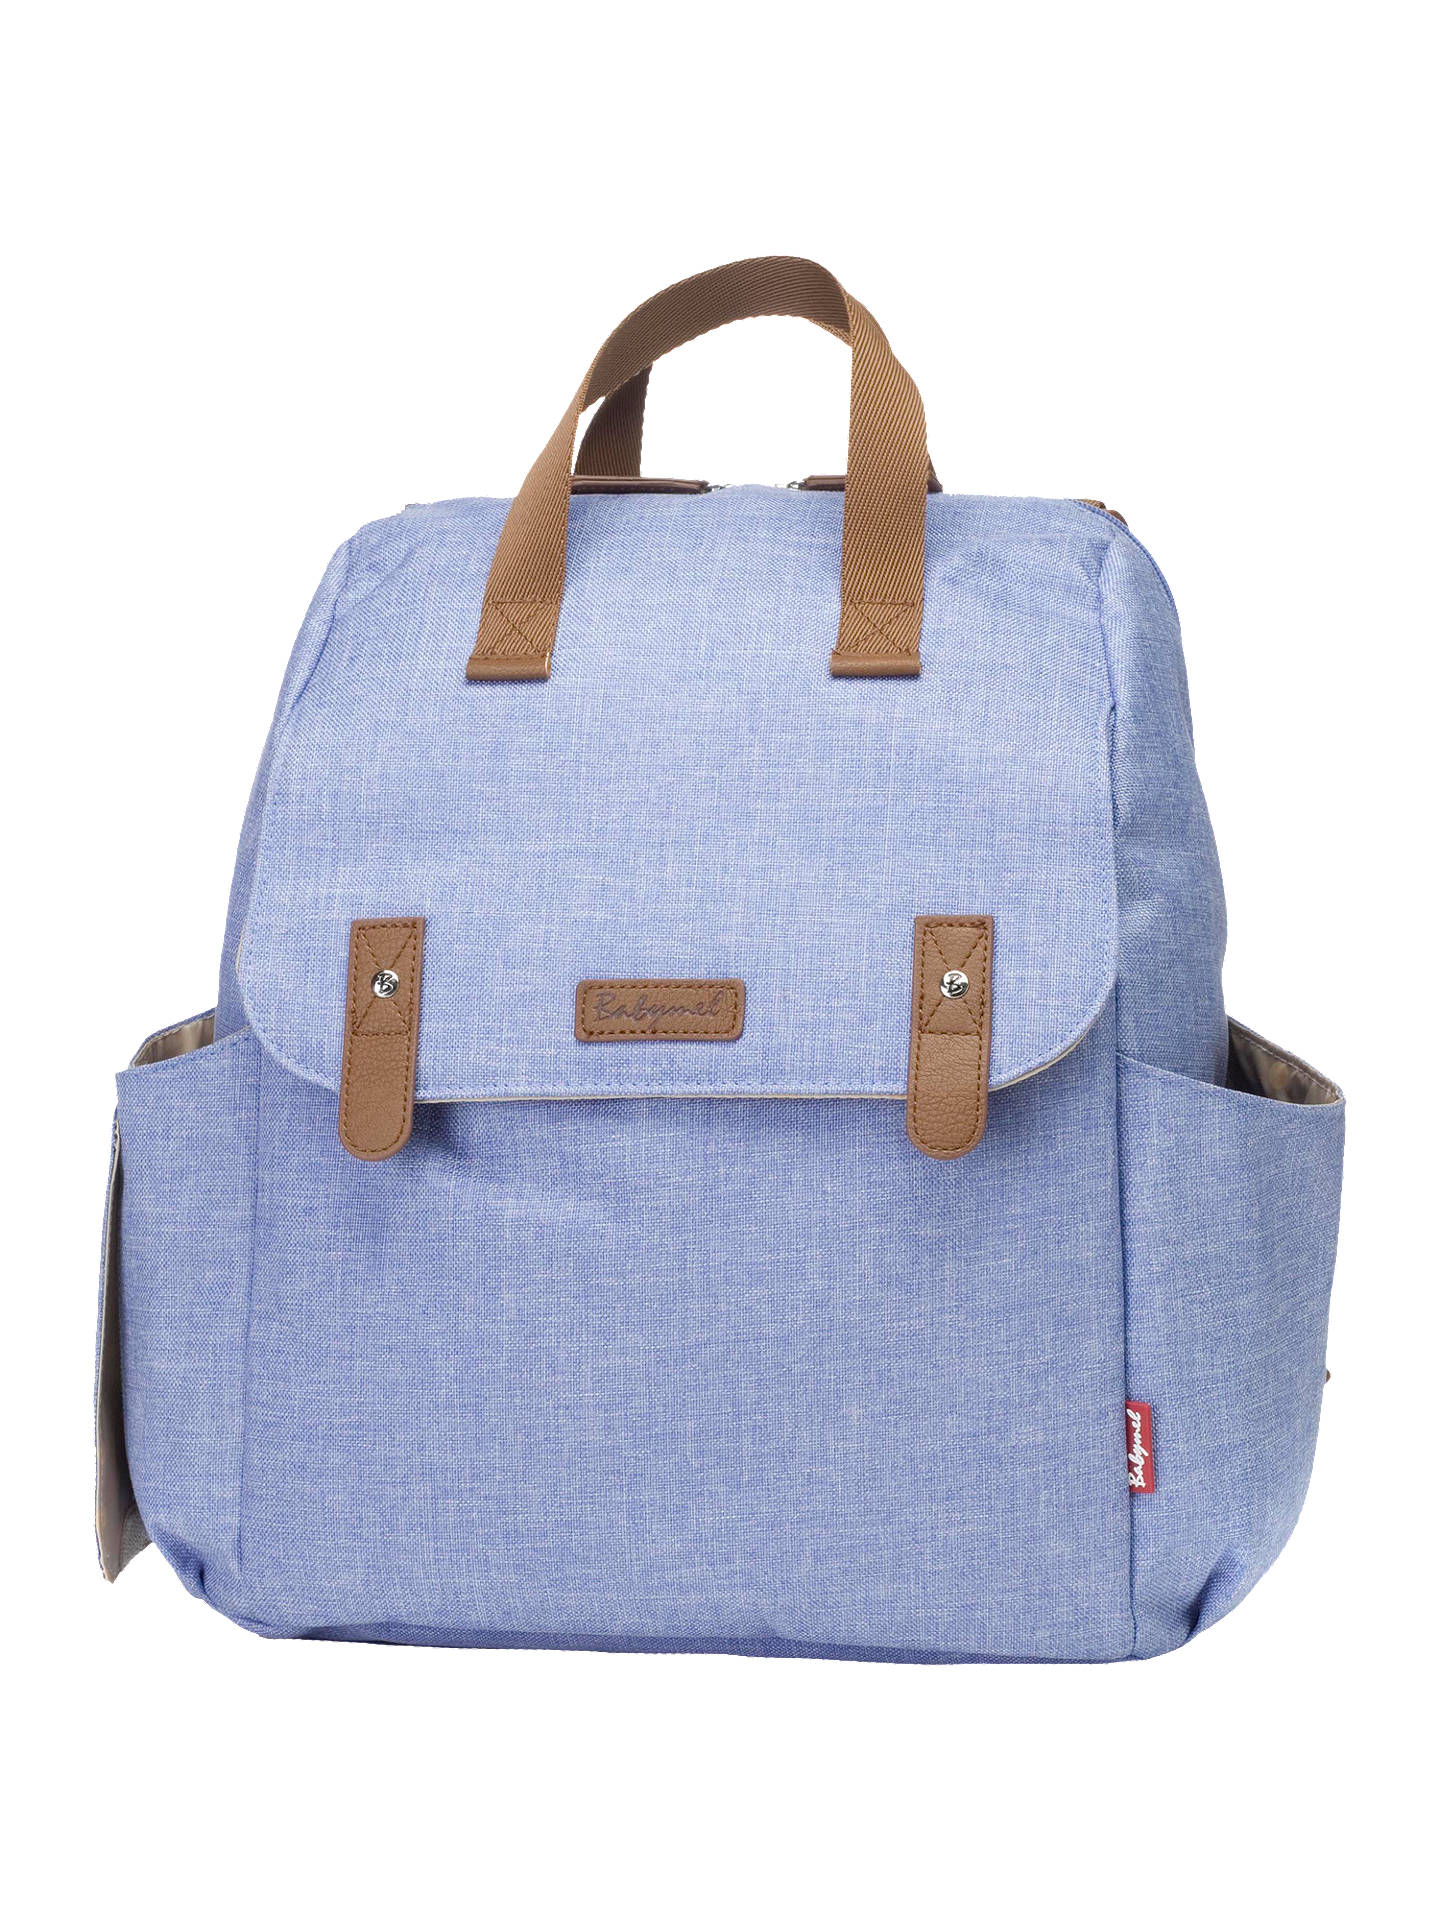 9fc089137538e Buy Babymel Robyn Convertible Backpack, Bluebell Online at johnlewis.com ...